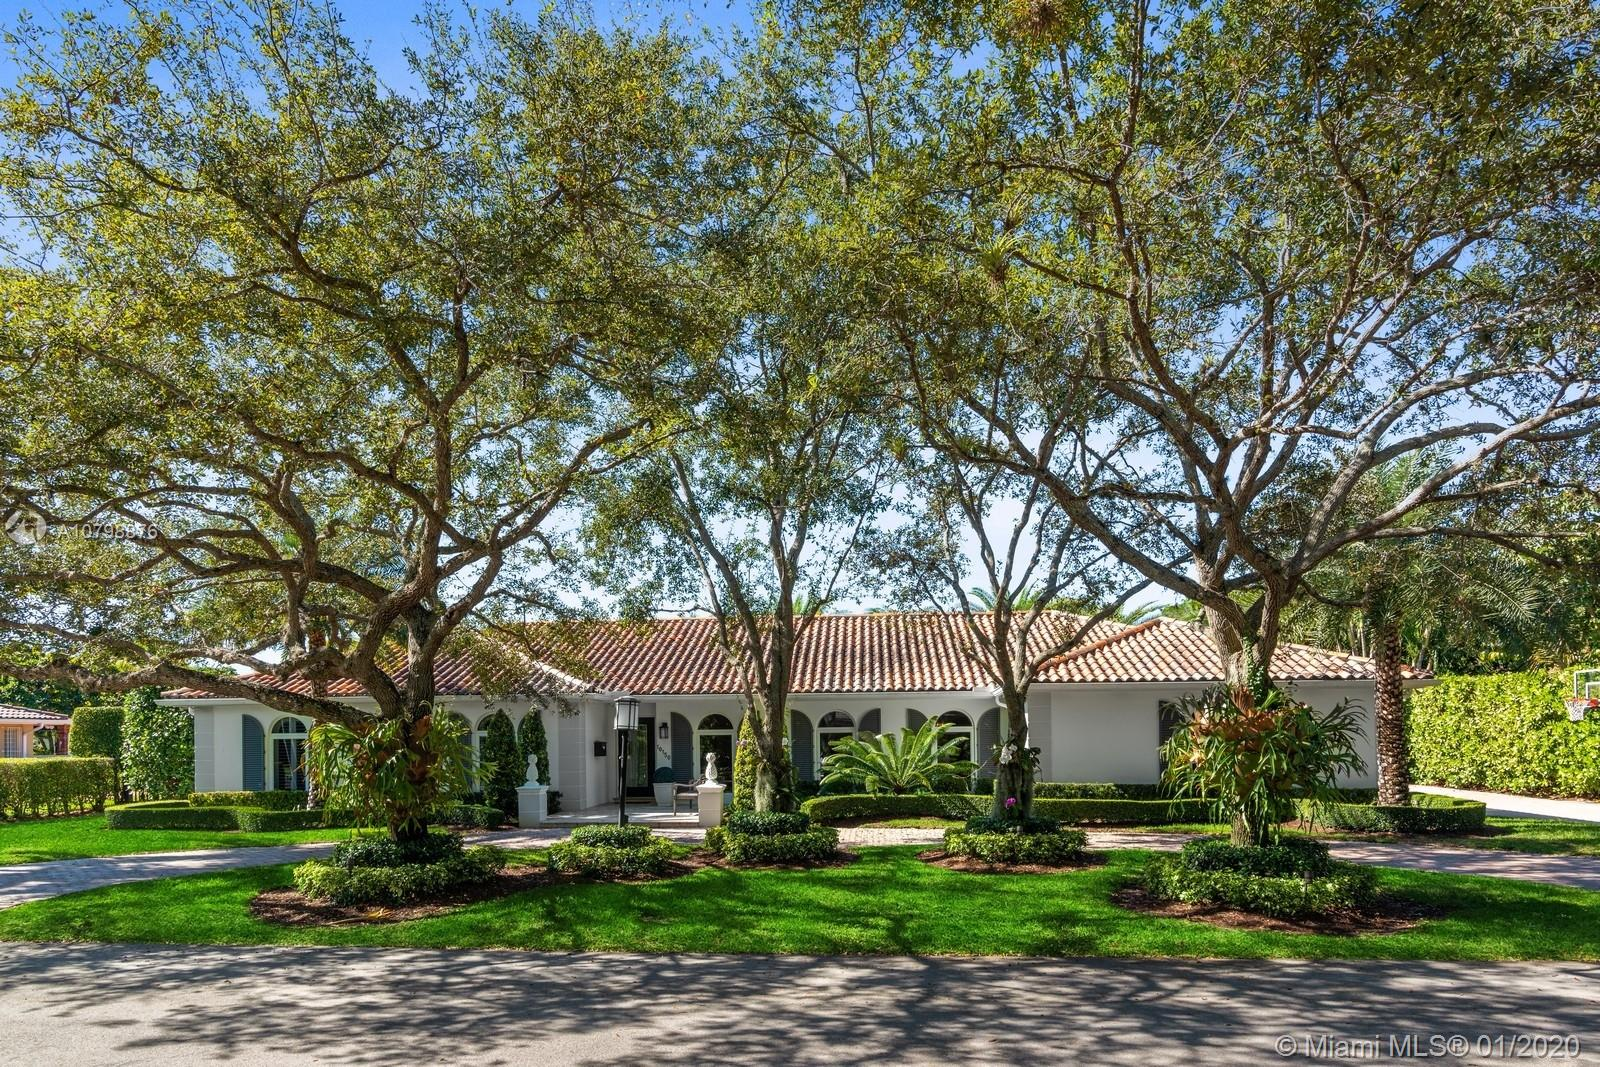 10150 SW 70th Ave, Pinecrest, Florida 33156, 4 Bedrooms Bedrooms, ,3 BathroomsBathrooms,Residential,For Sale,10150 SW 70th Ave,A10798876